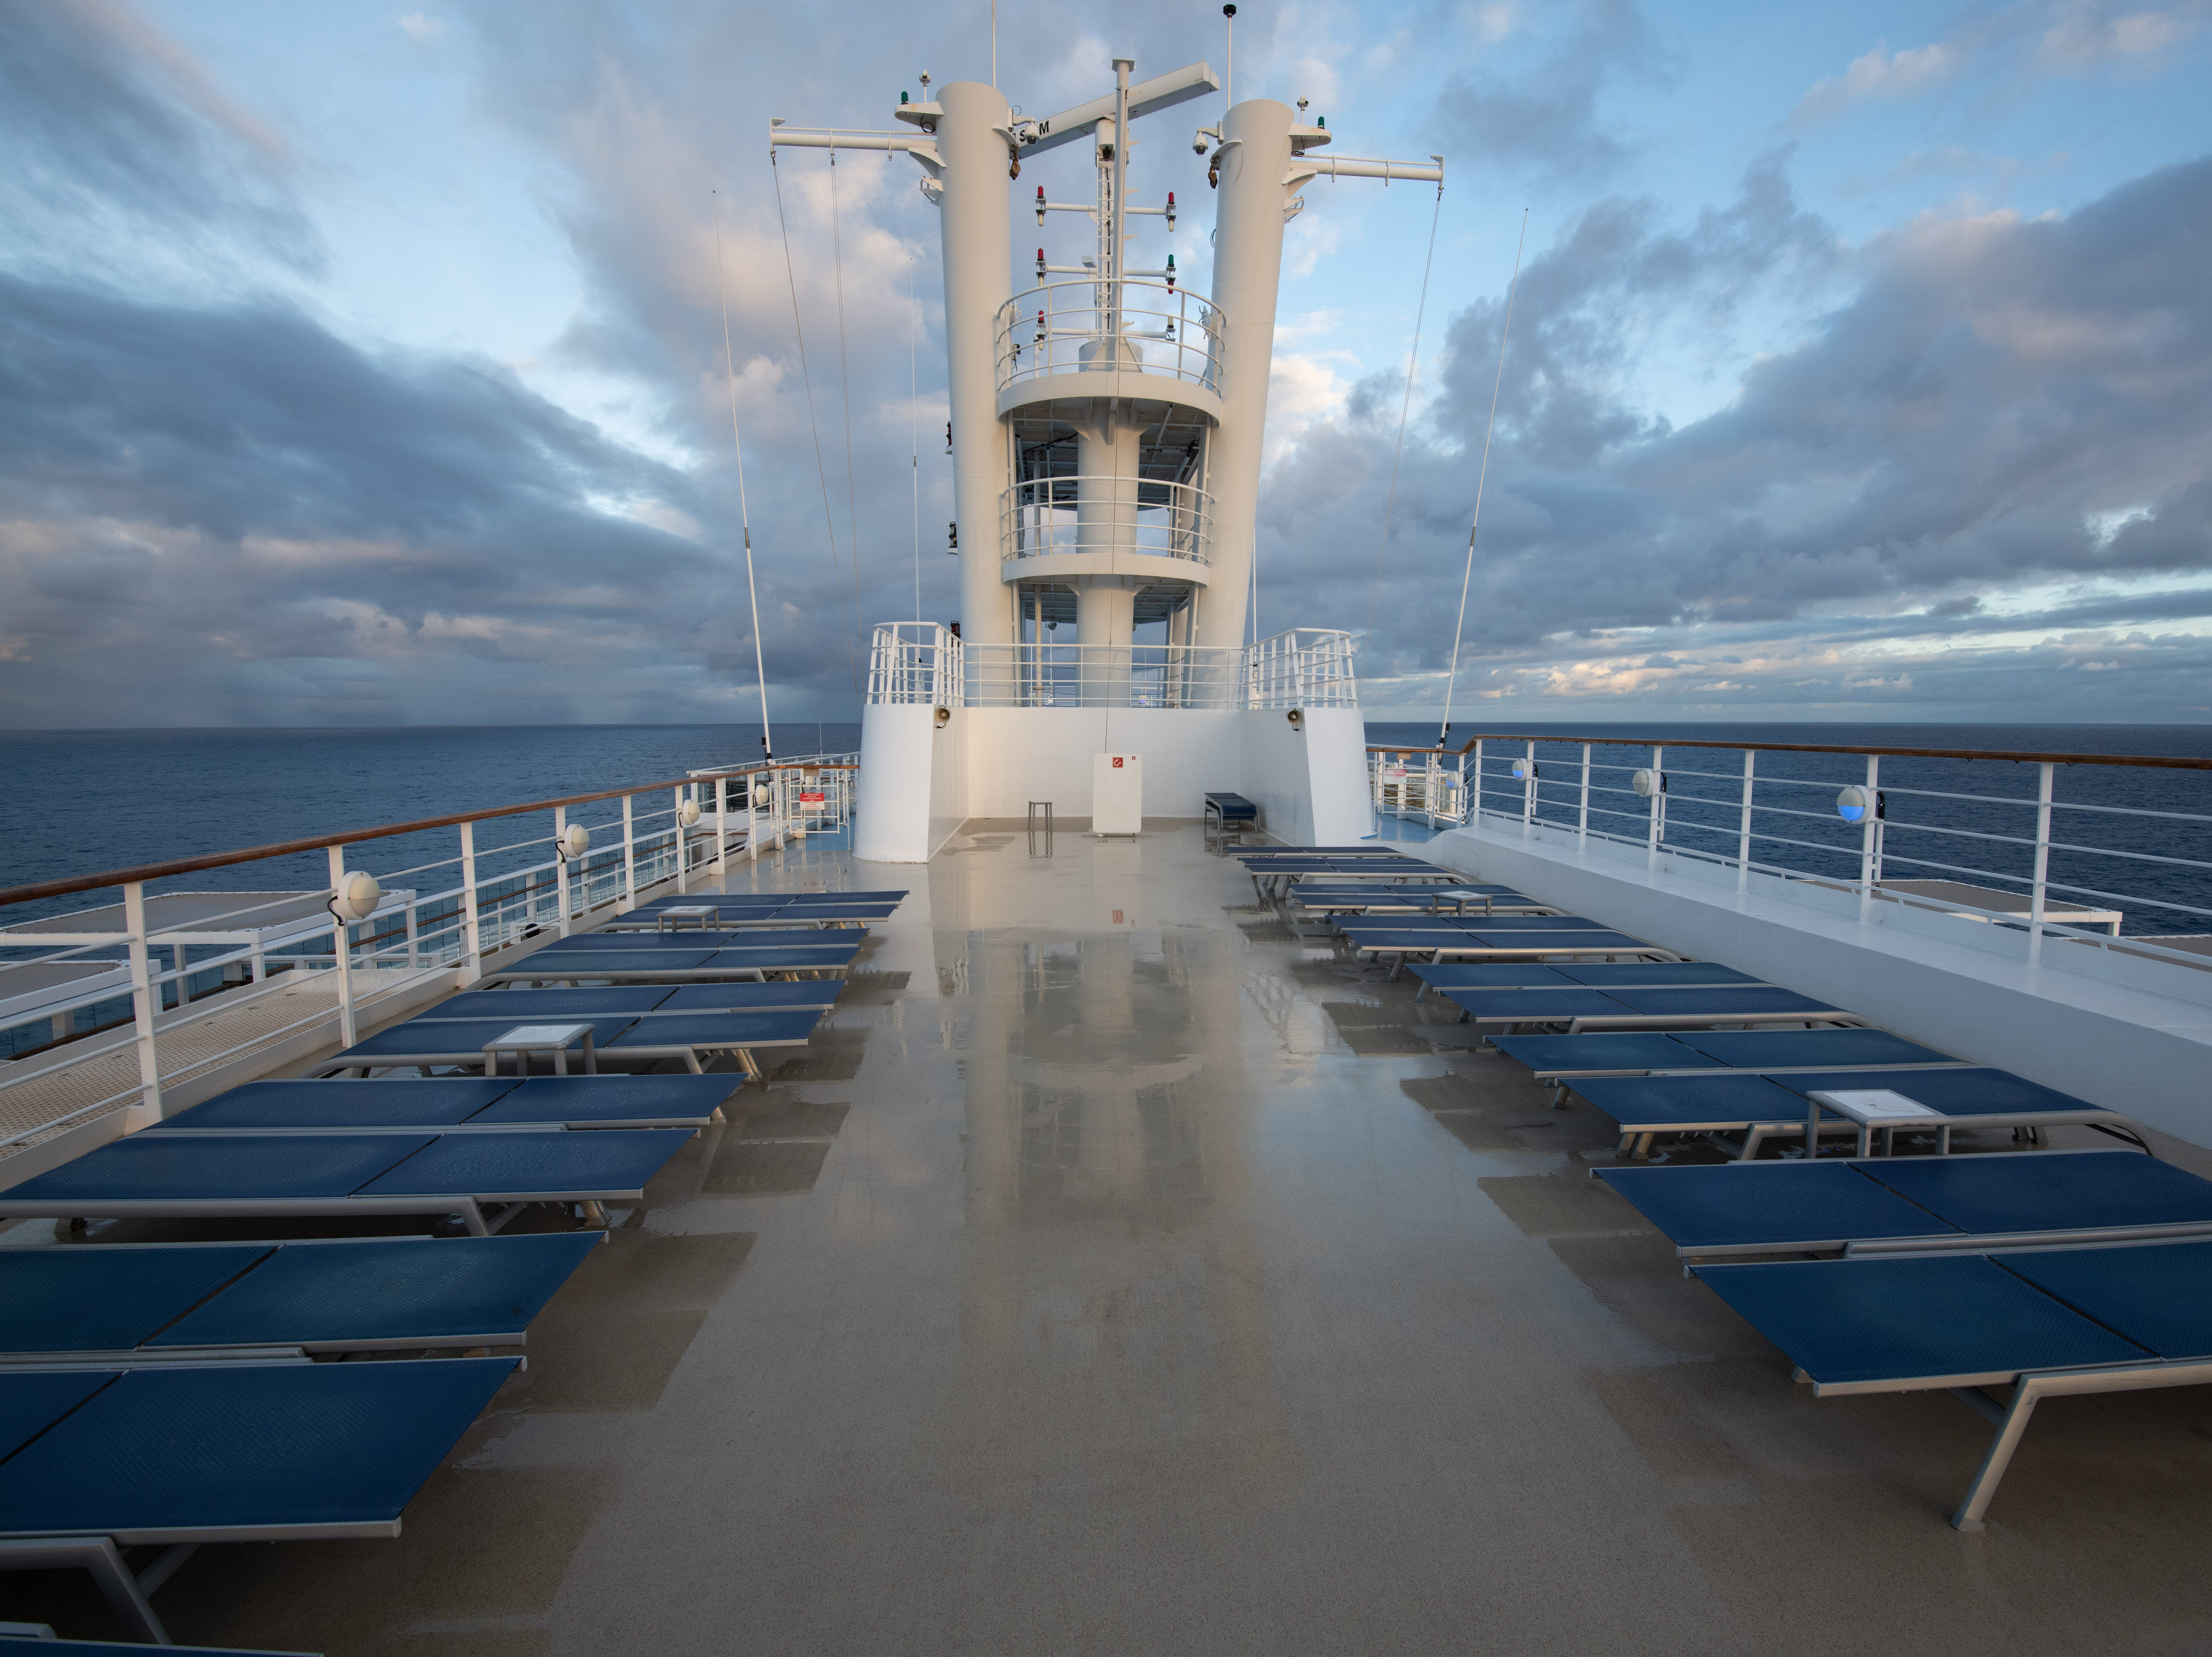 More lounge seating can be found at the very top of the ship on Deck 15.